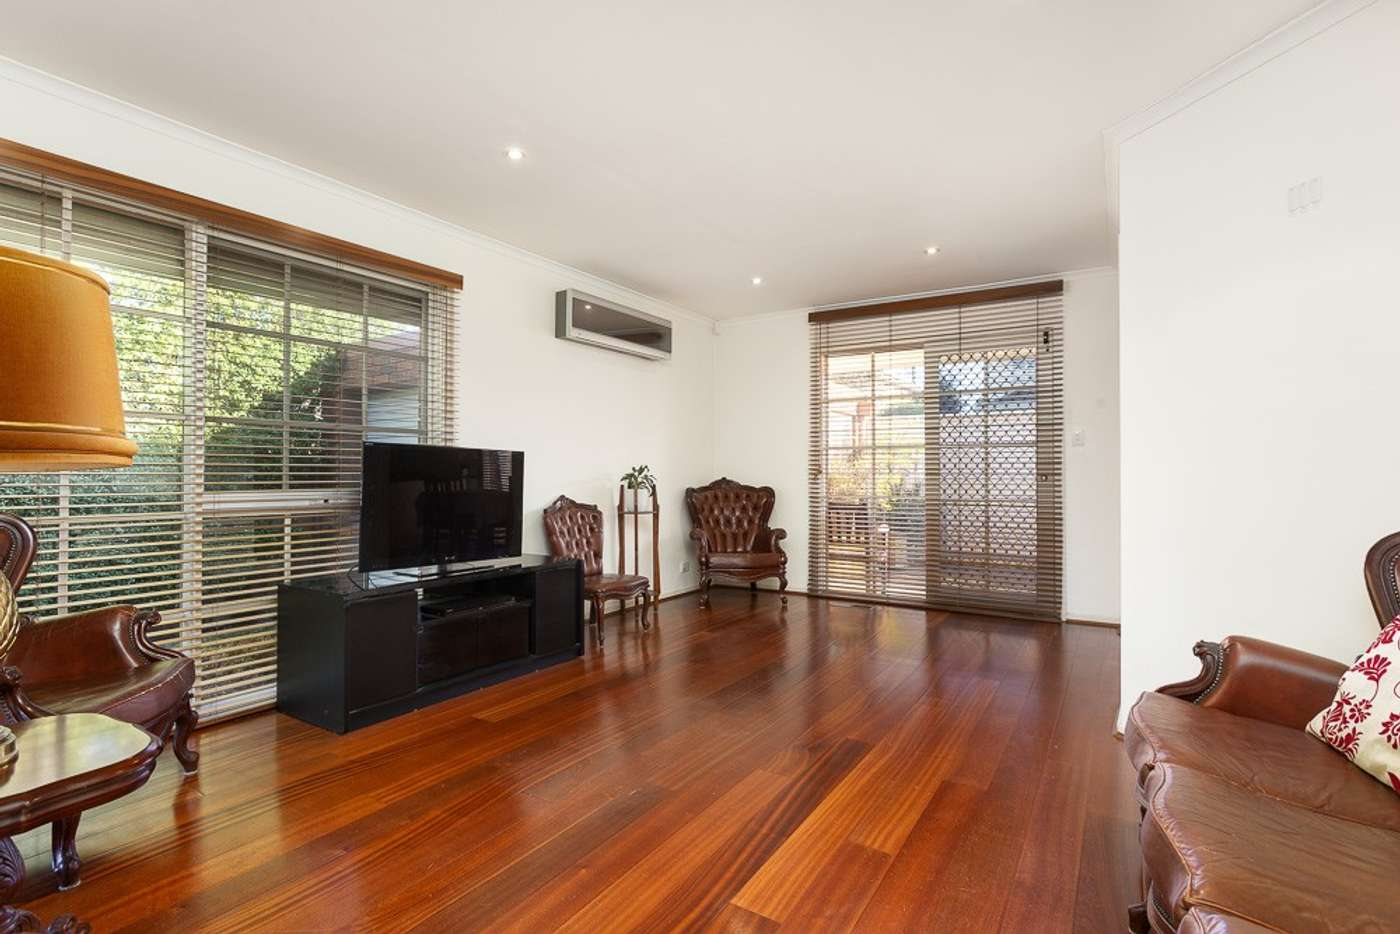 Fifth view of Homely unit listing, 2/34 Holyrood Avenue, Strathmore VIC 3041